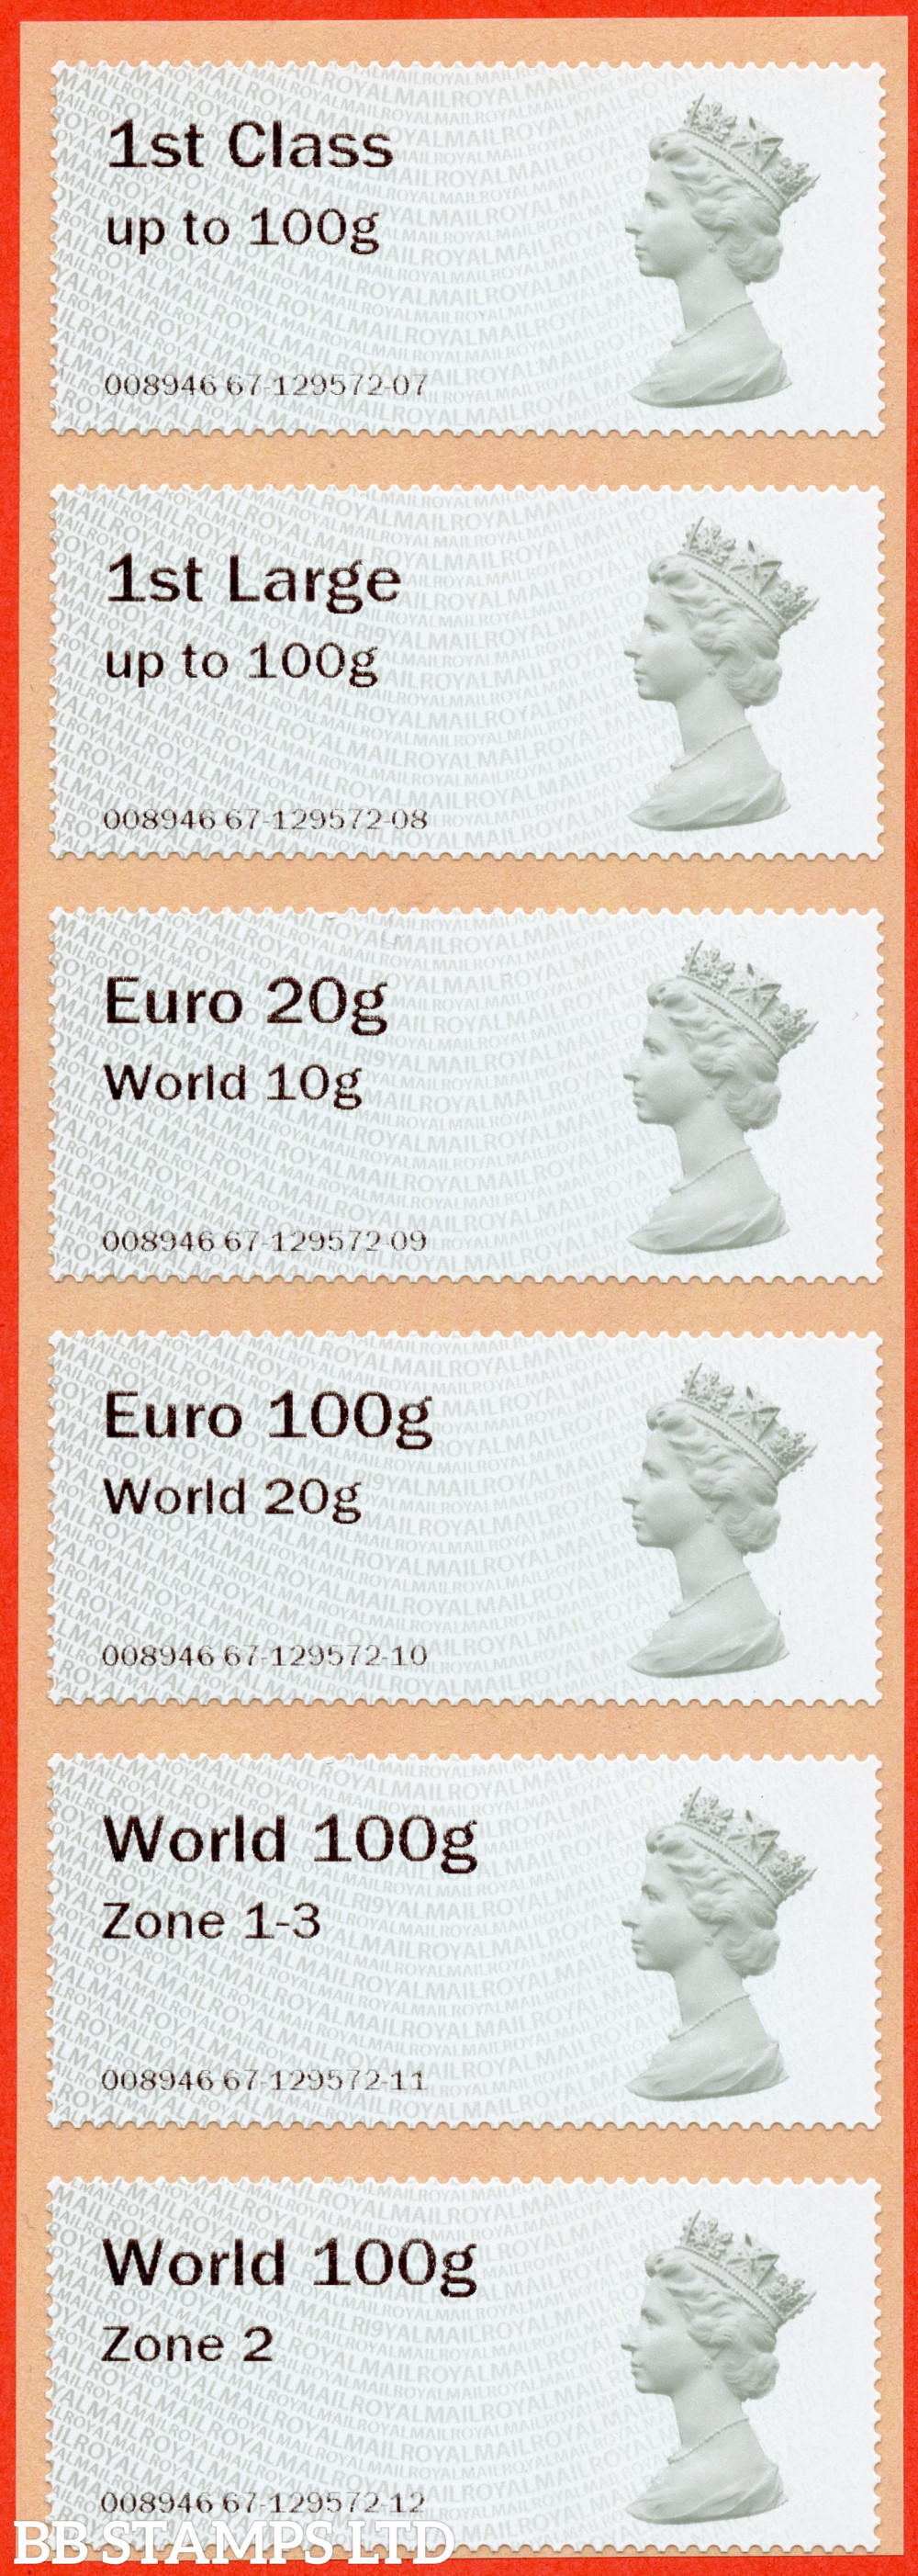 Machin (TIIA), set of 6 with 01/09/20 new overseas stamps: 1st/1stL/Euro 20g World 10g, and 3 new values: Euro 100g World 20g, World 100g Zone 1-3 and World Zone 2: with R19Y year code (BK31 P1)